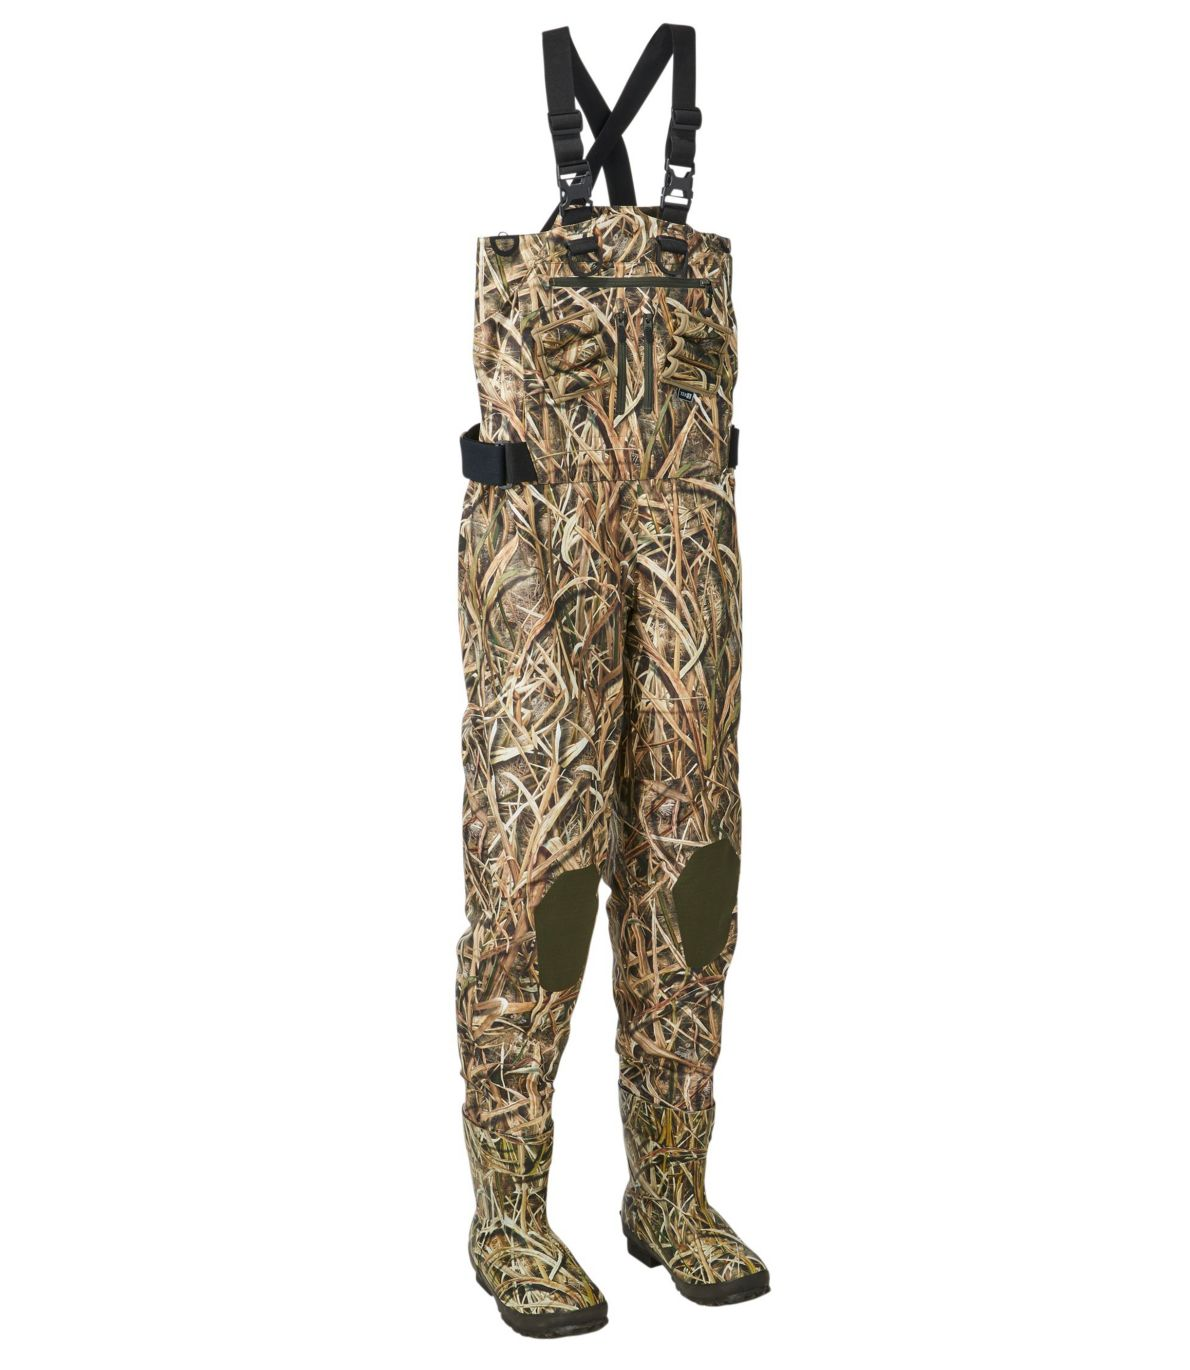 Men's Apex Waterfowl Bootfoot Waders with Super Seam Technology